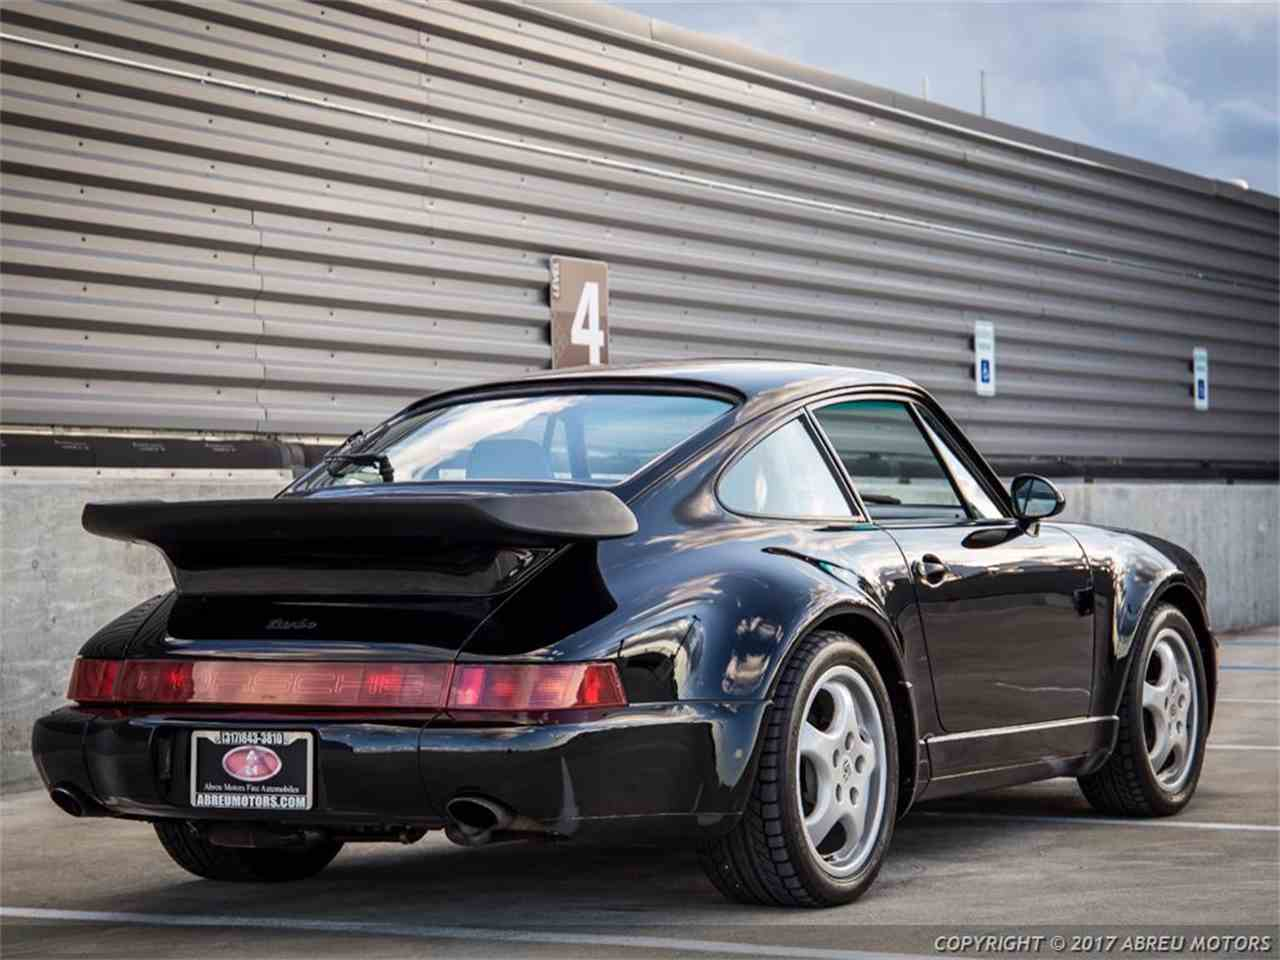 Large Picture of '92 Porsche 911 located in Carmel Indiana - $114,995.00 - JCKW